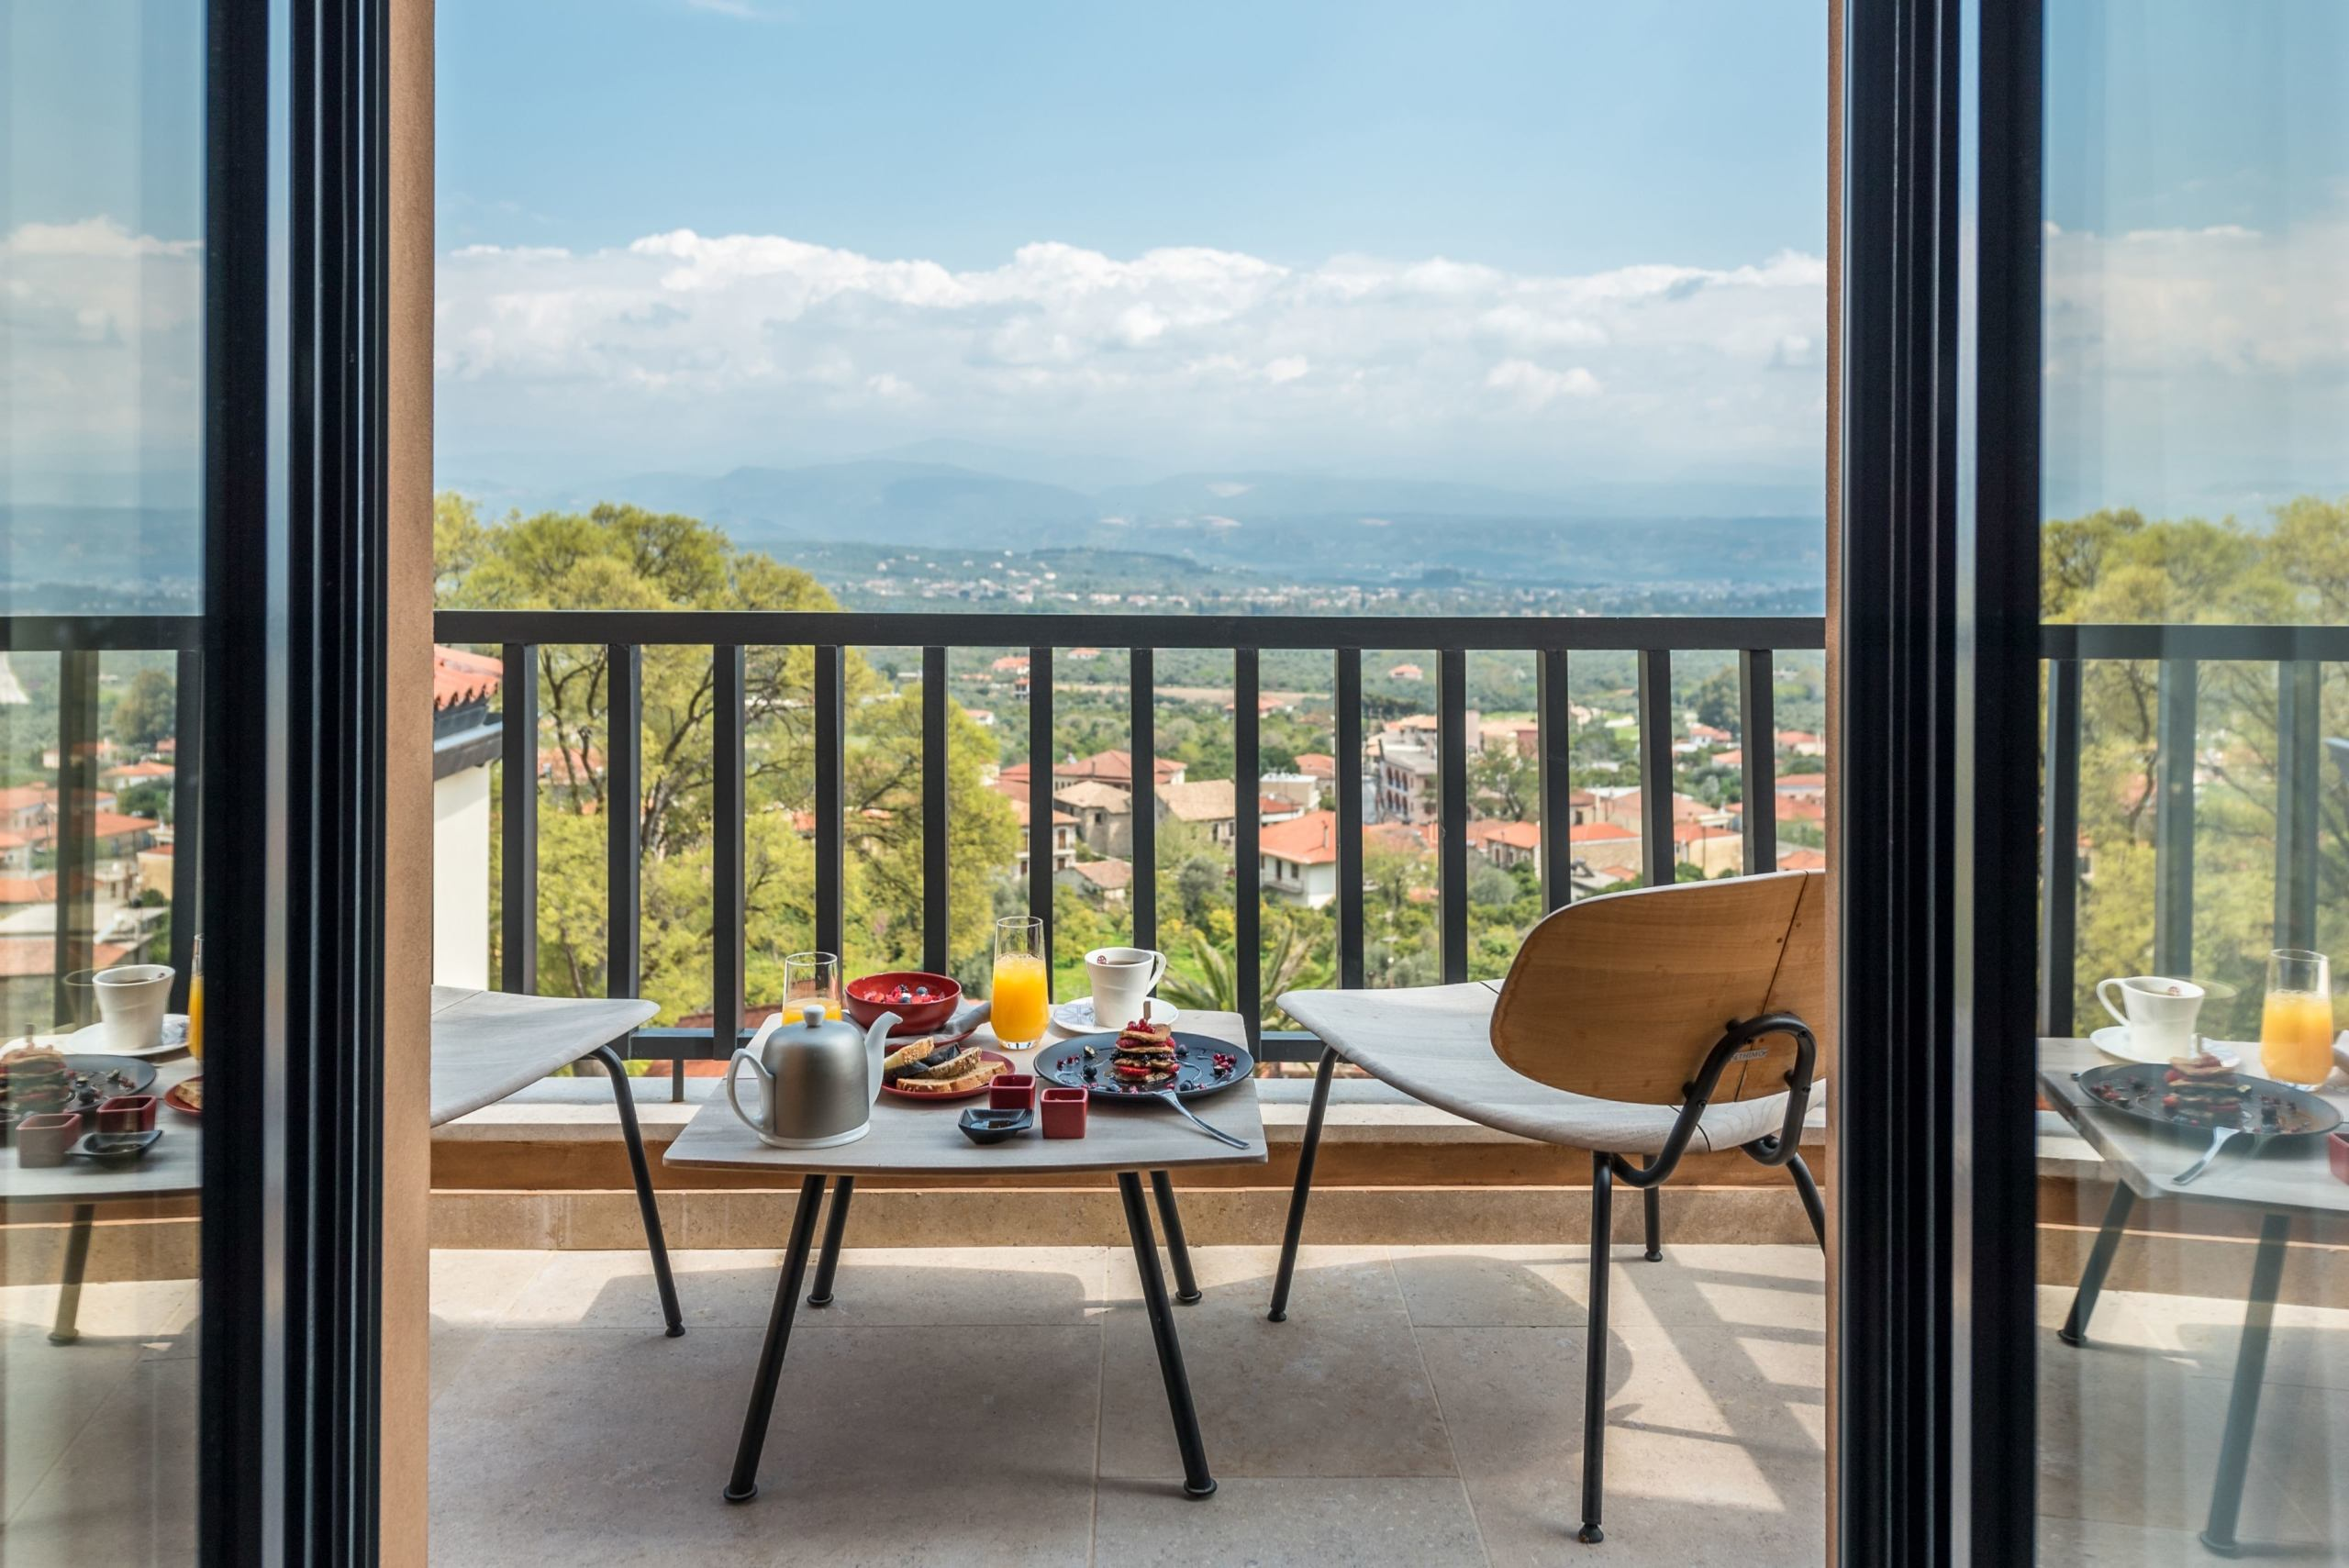 Breakfast being served on a balcony overlooking the Greek countryside